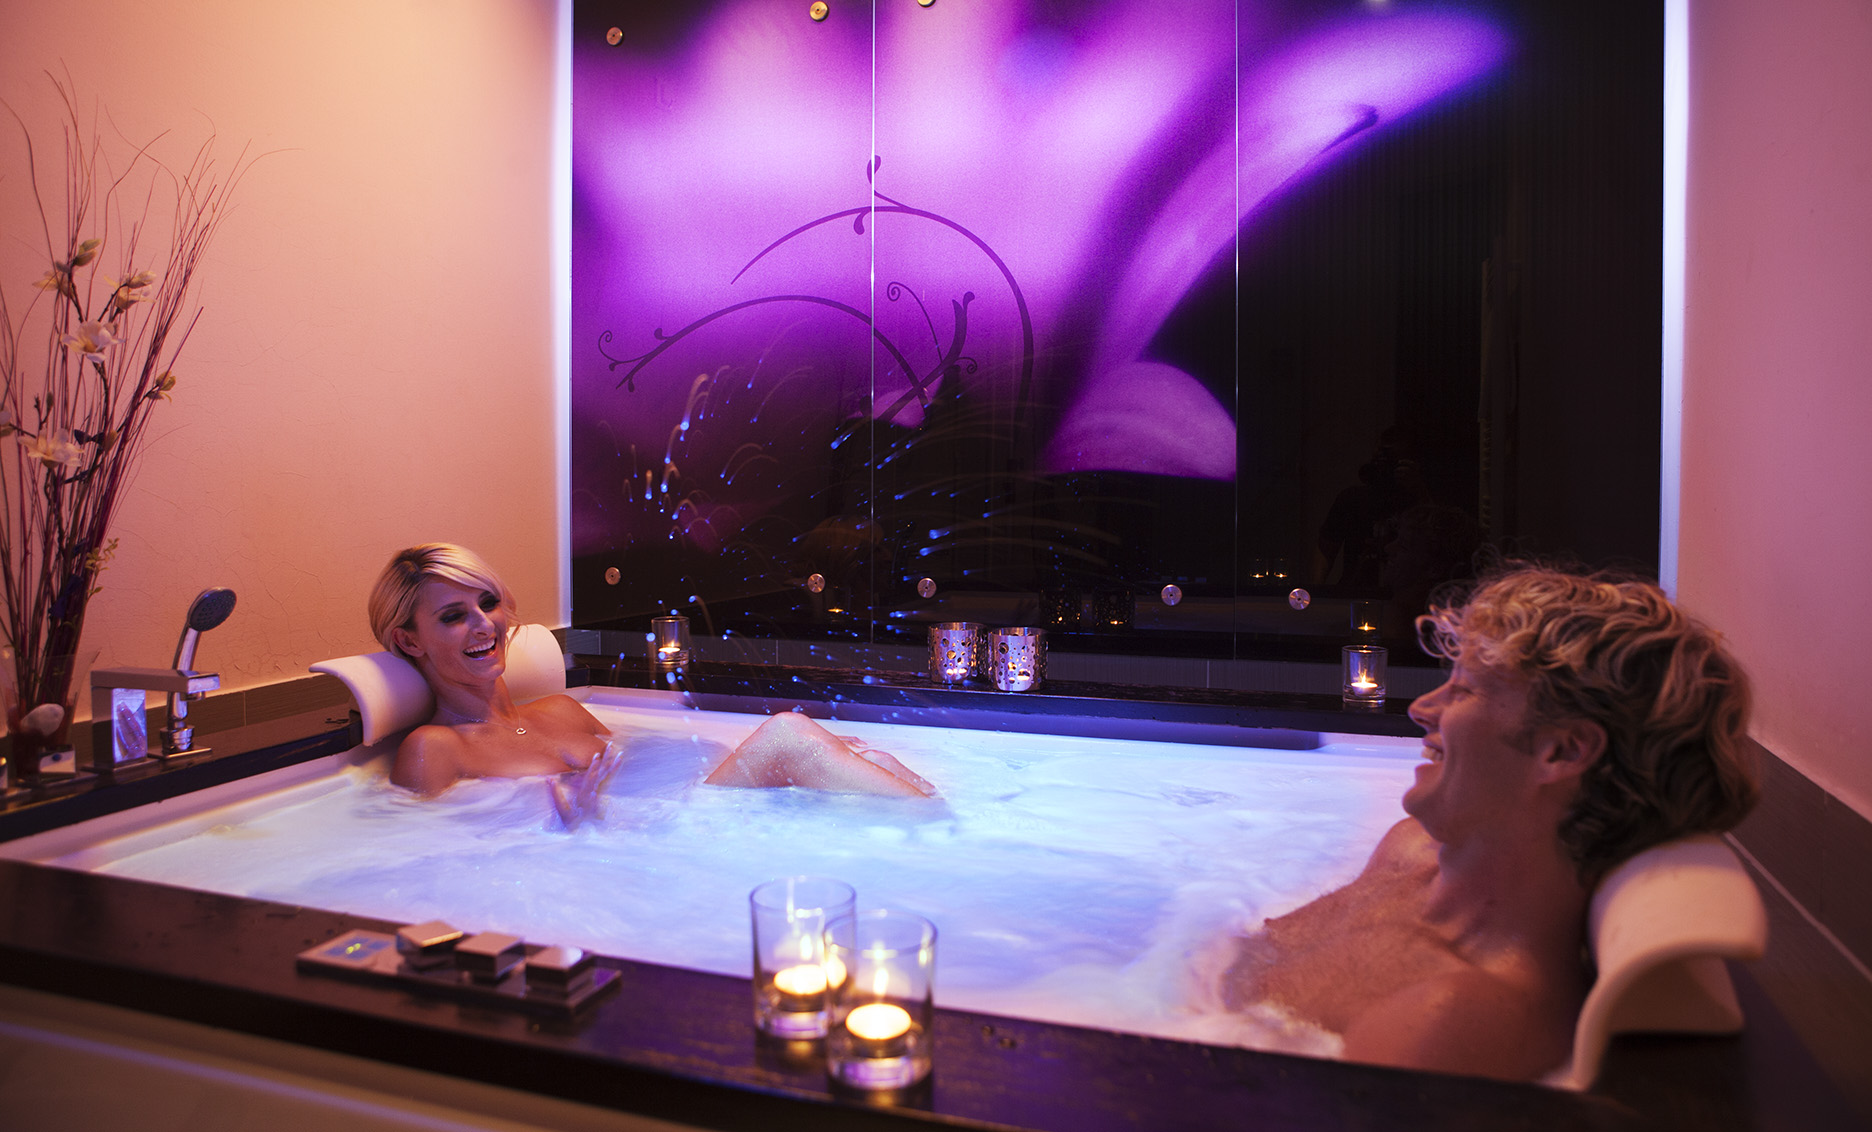 Bath for two